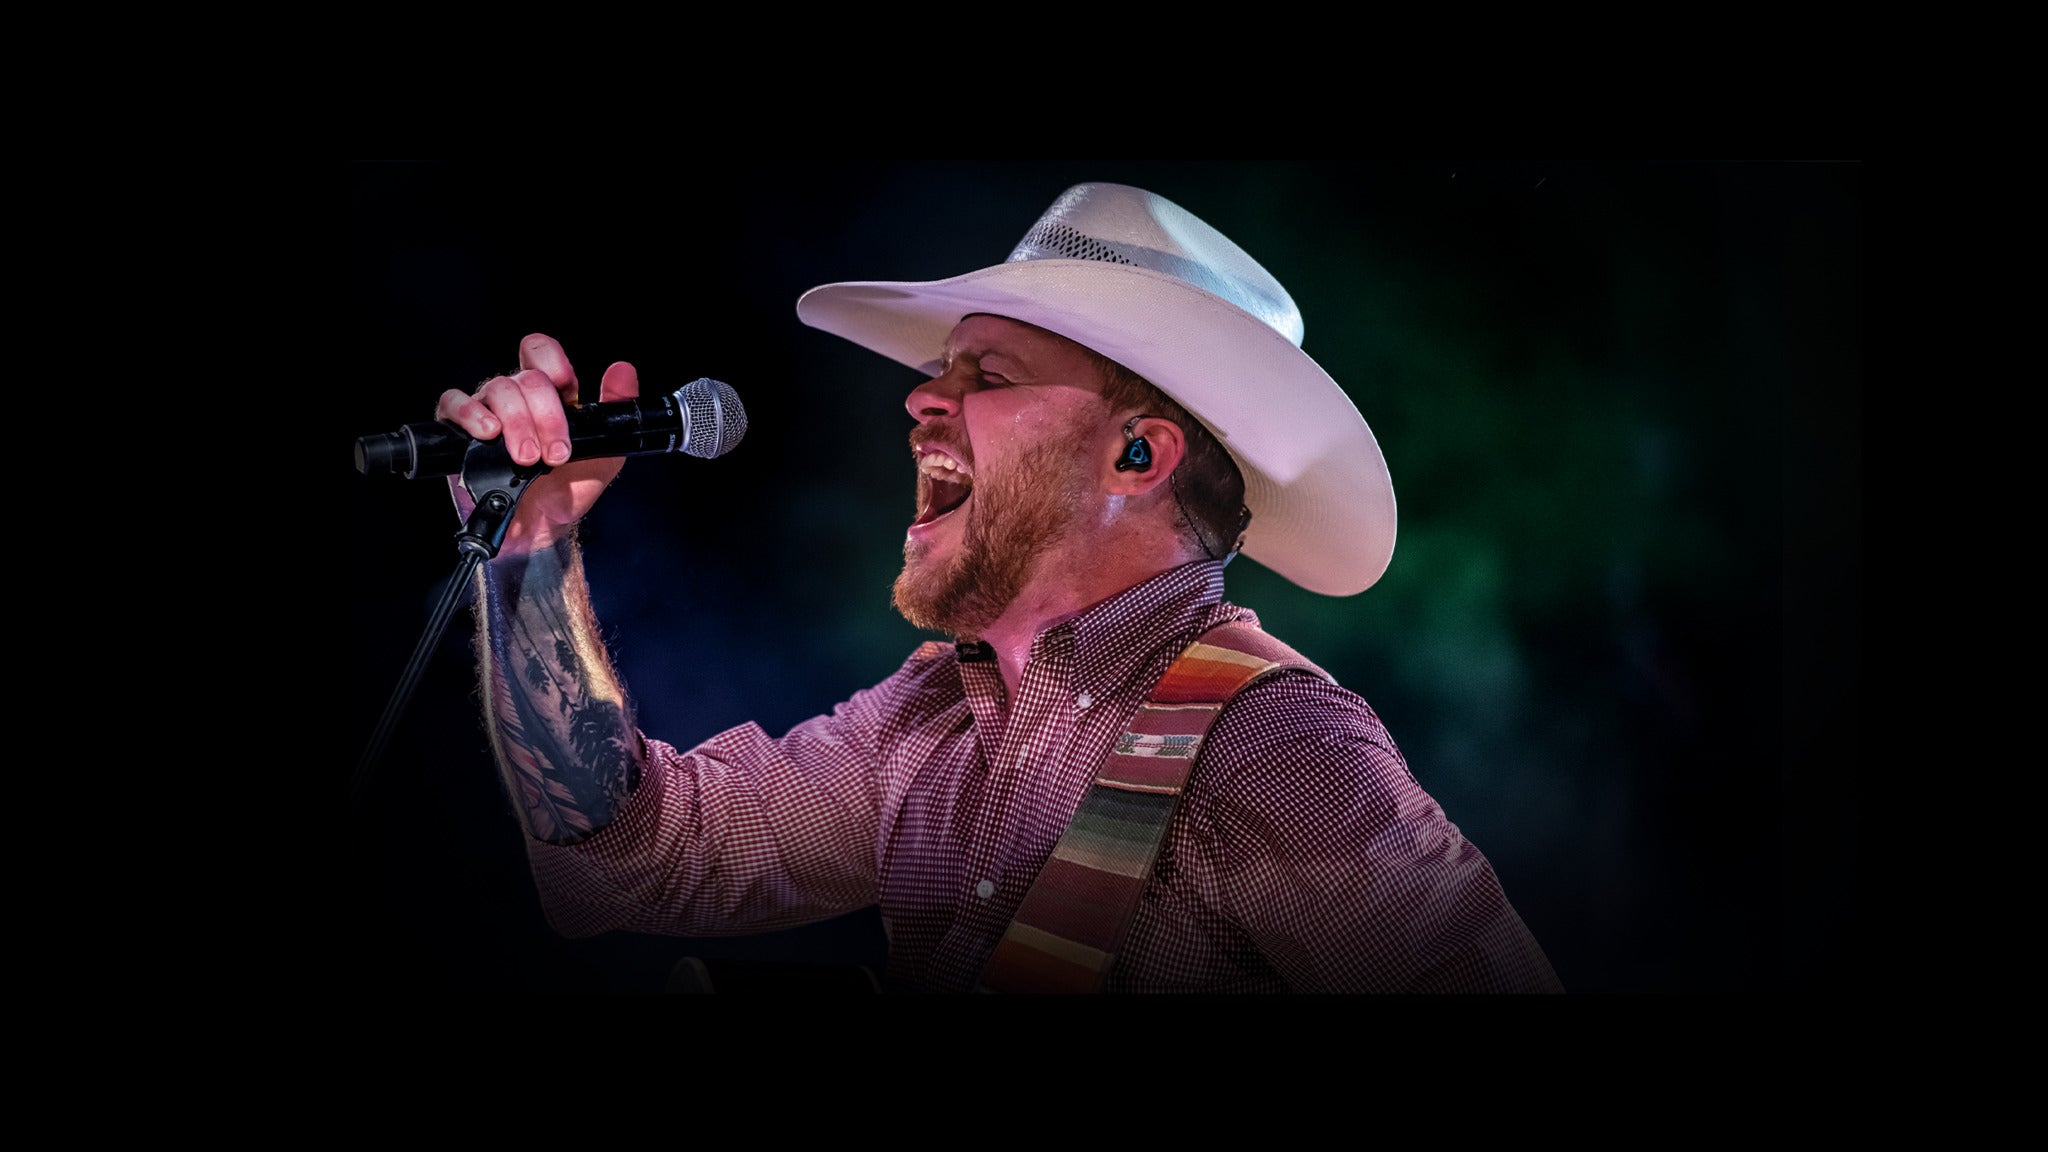 Cody Johnson at The St. Augustine Amphitheatre